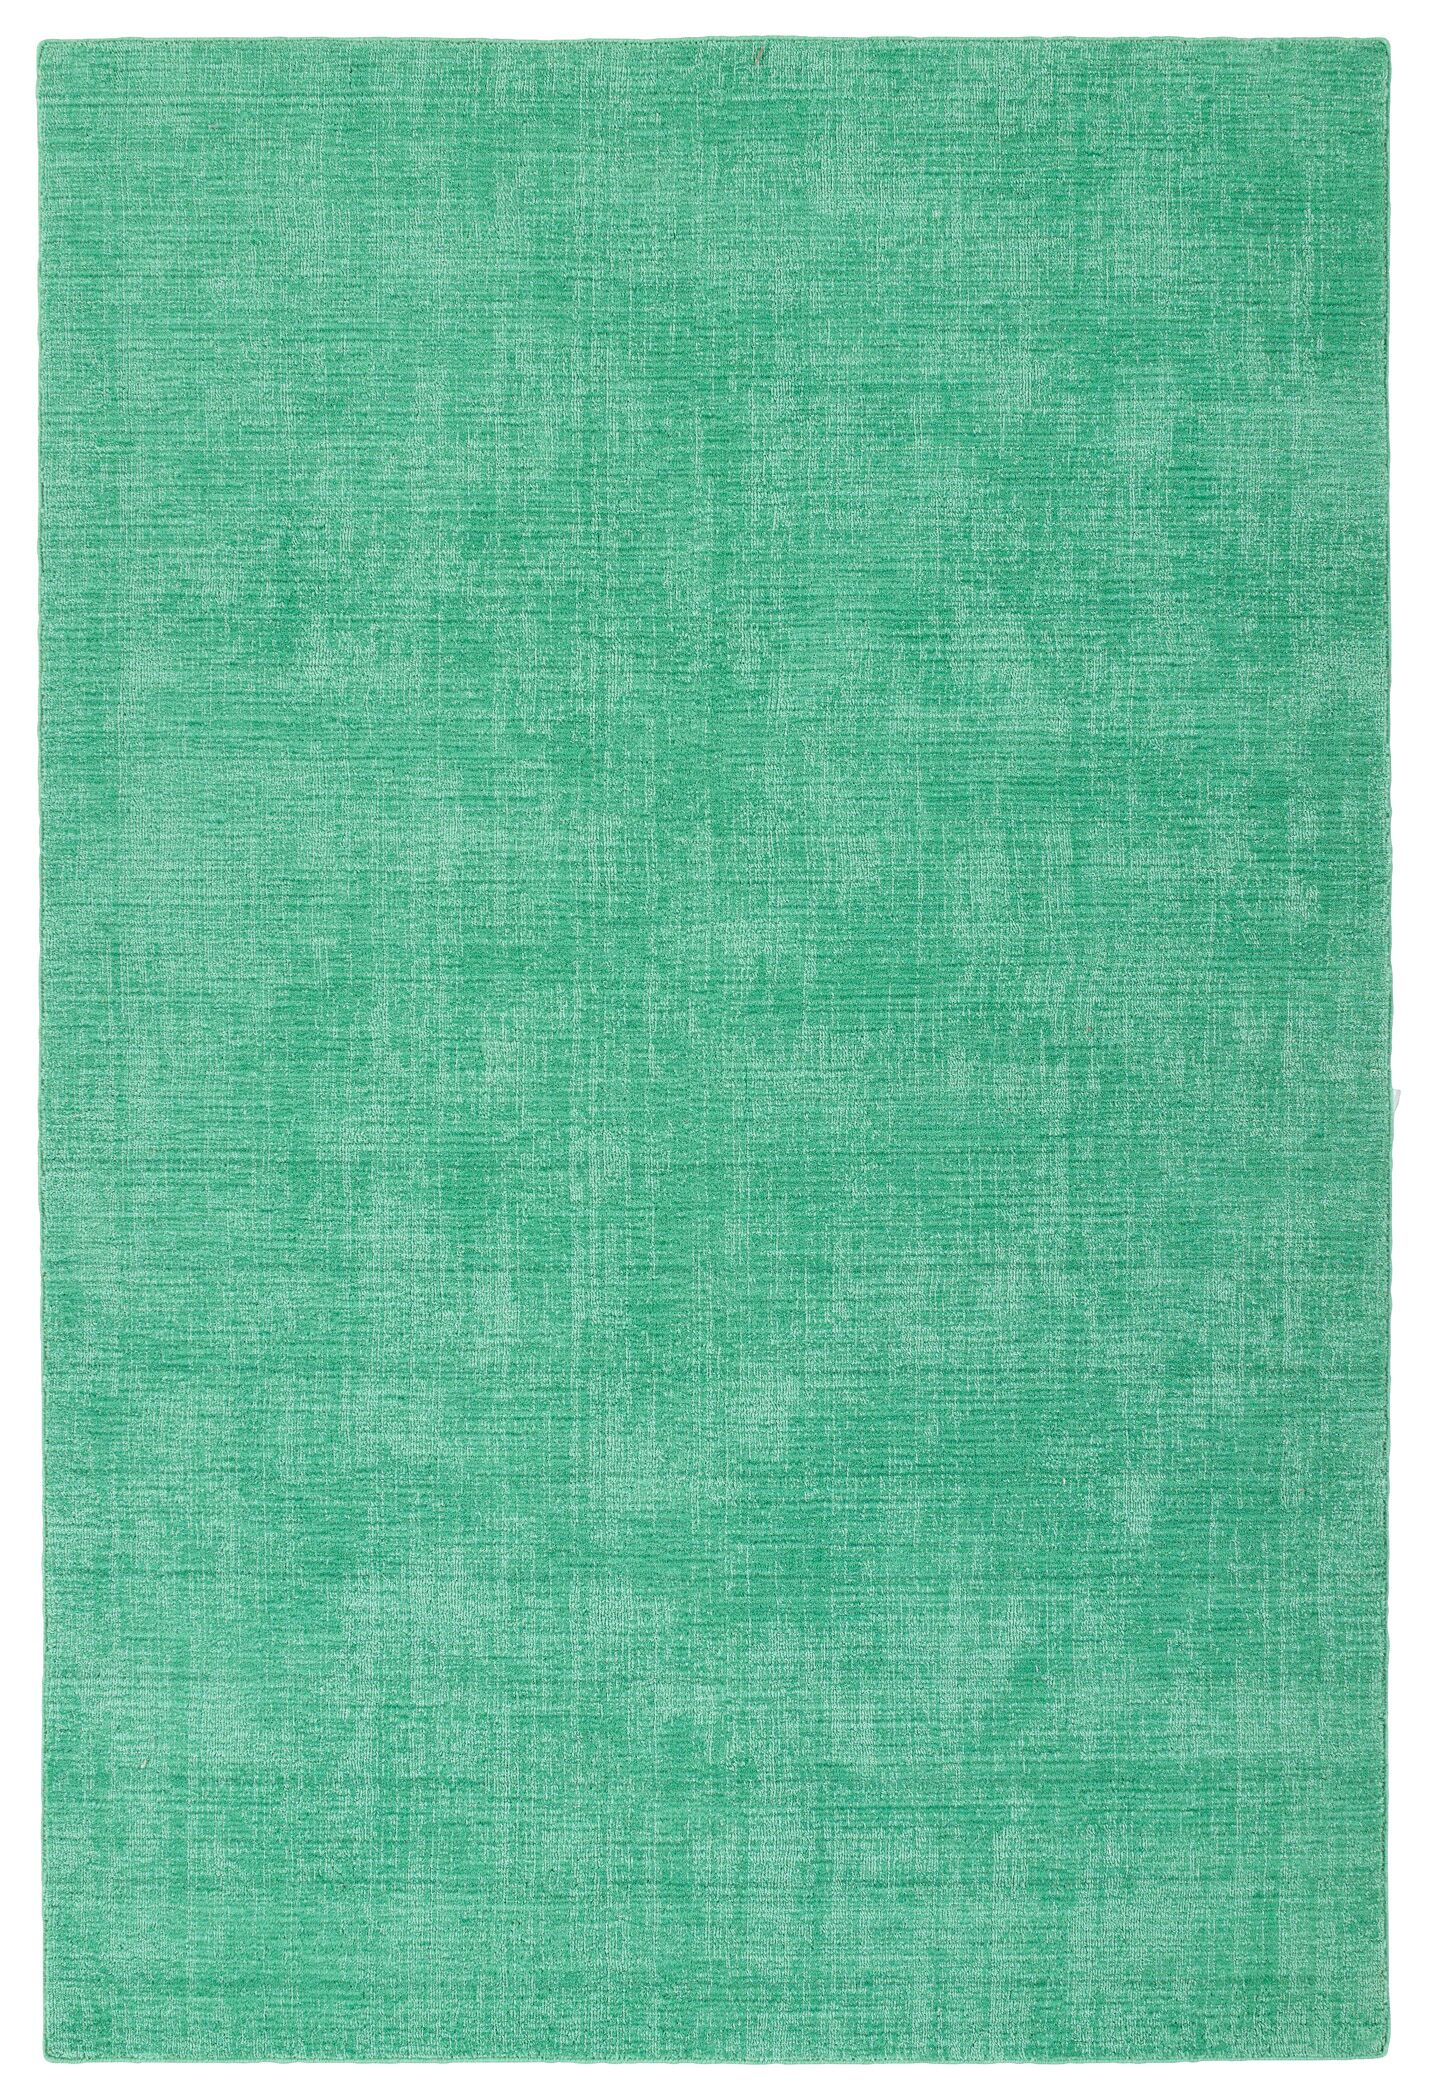 Allibert Hand-Loomed Mint Indoor/Outdoor Area Rug Rug Size: Rectangle 5' x 7'6